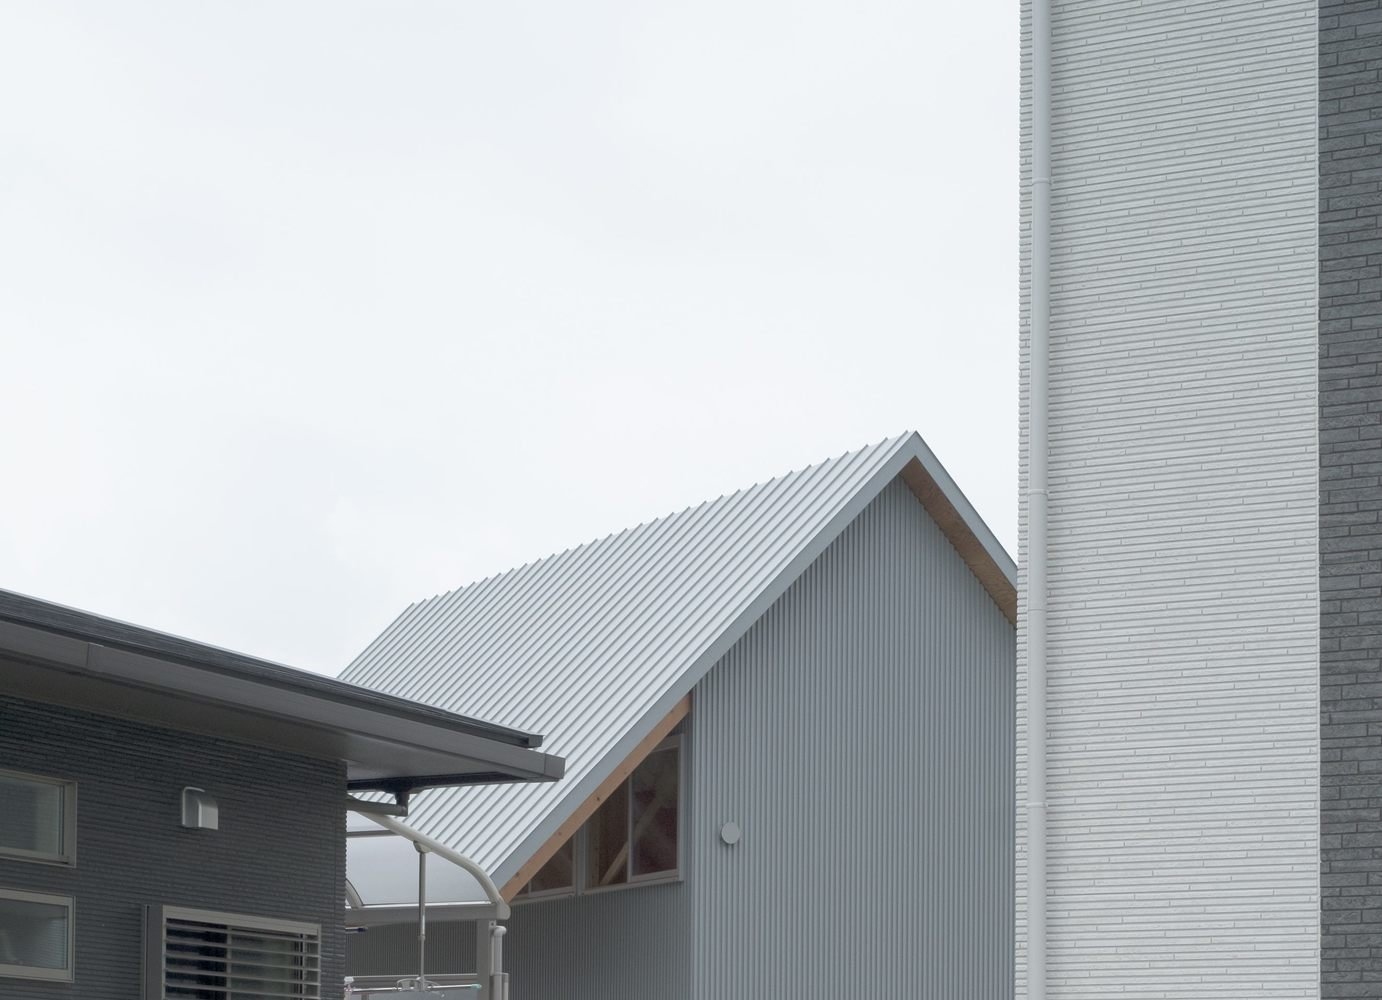 House in Bungotakada is a minimal architecture project located in Oita, Japan, designed by Yabashi Architect & Associates. The owner wanted a spacious and bright space that would also accommodate guests. In order to lower costs, the architects chose to create split-level segmented programs. The split levels would divide the space without the use of partitions or walls. In doing so, each space is opened up to another, allowing light and wind to flow throughout the entire home.  Architecture by Leibal